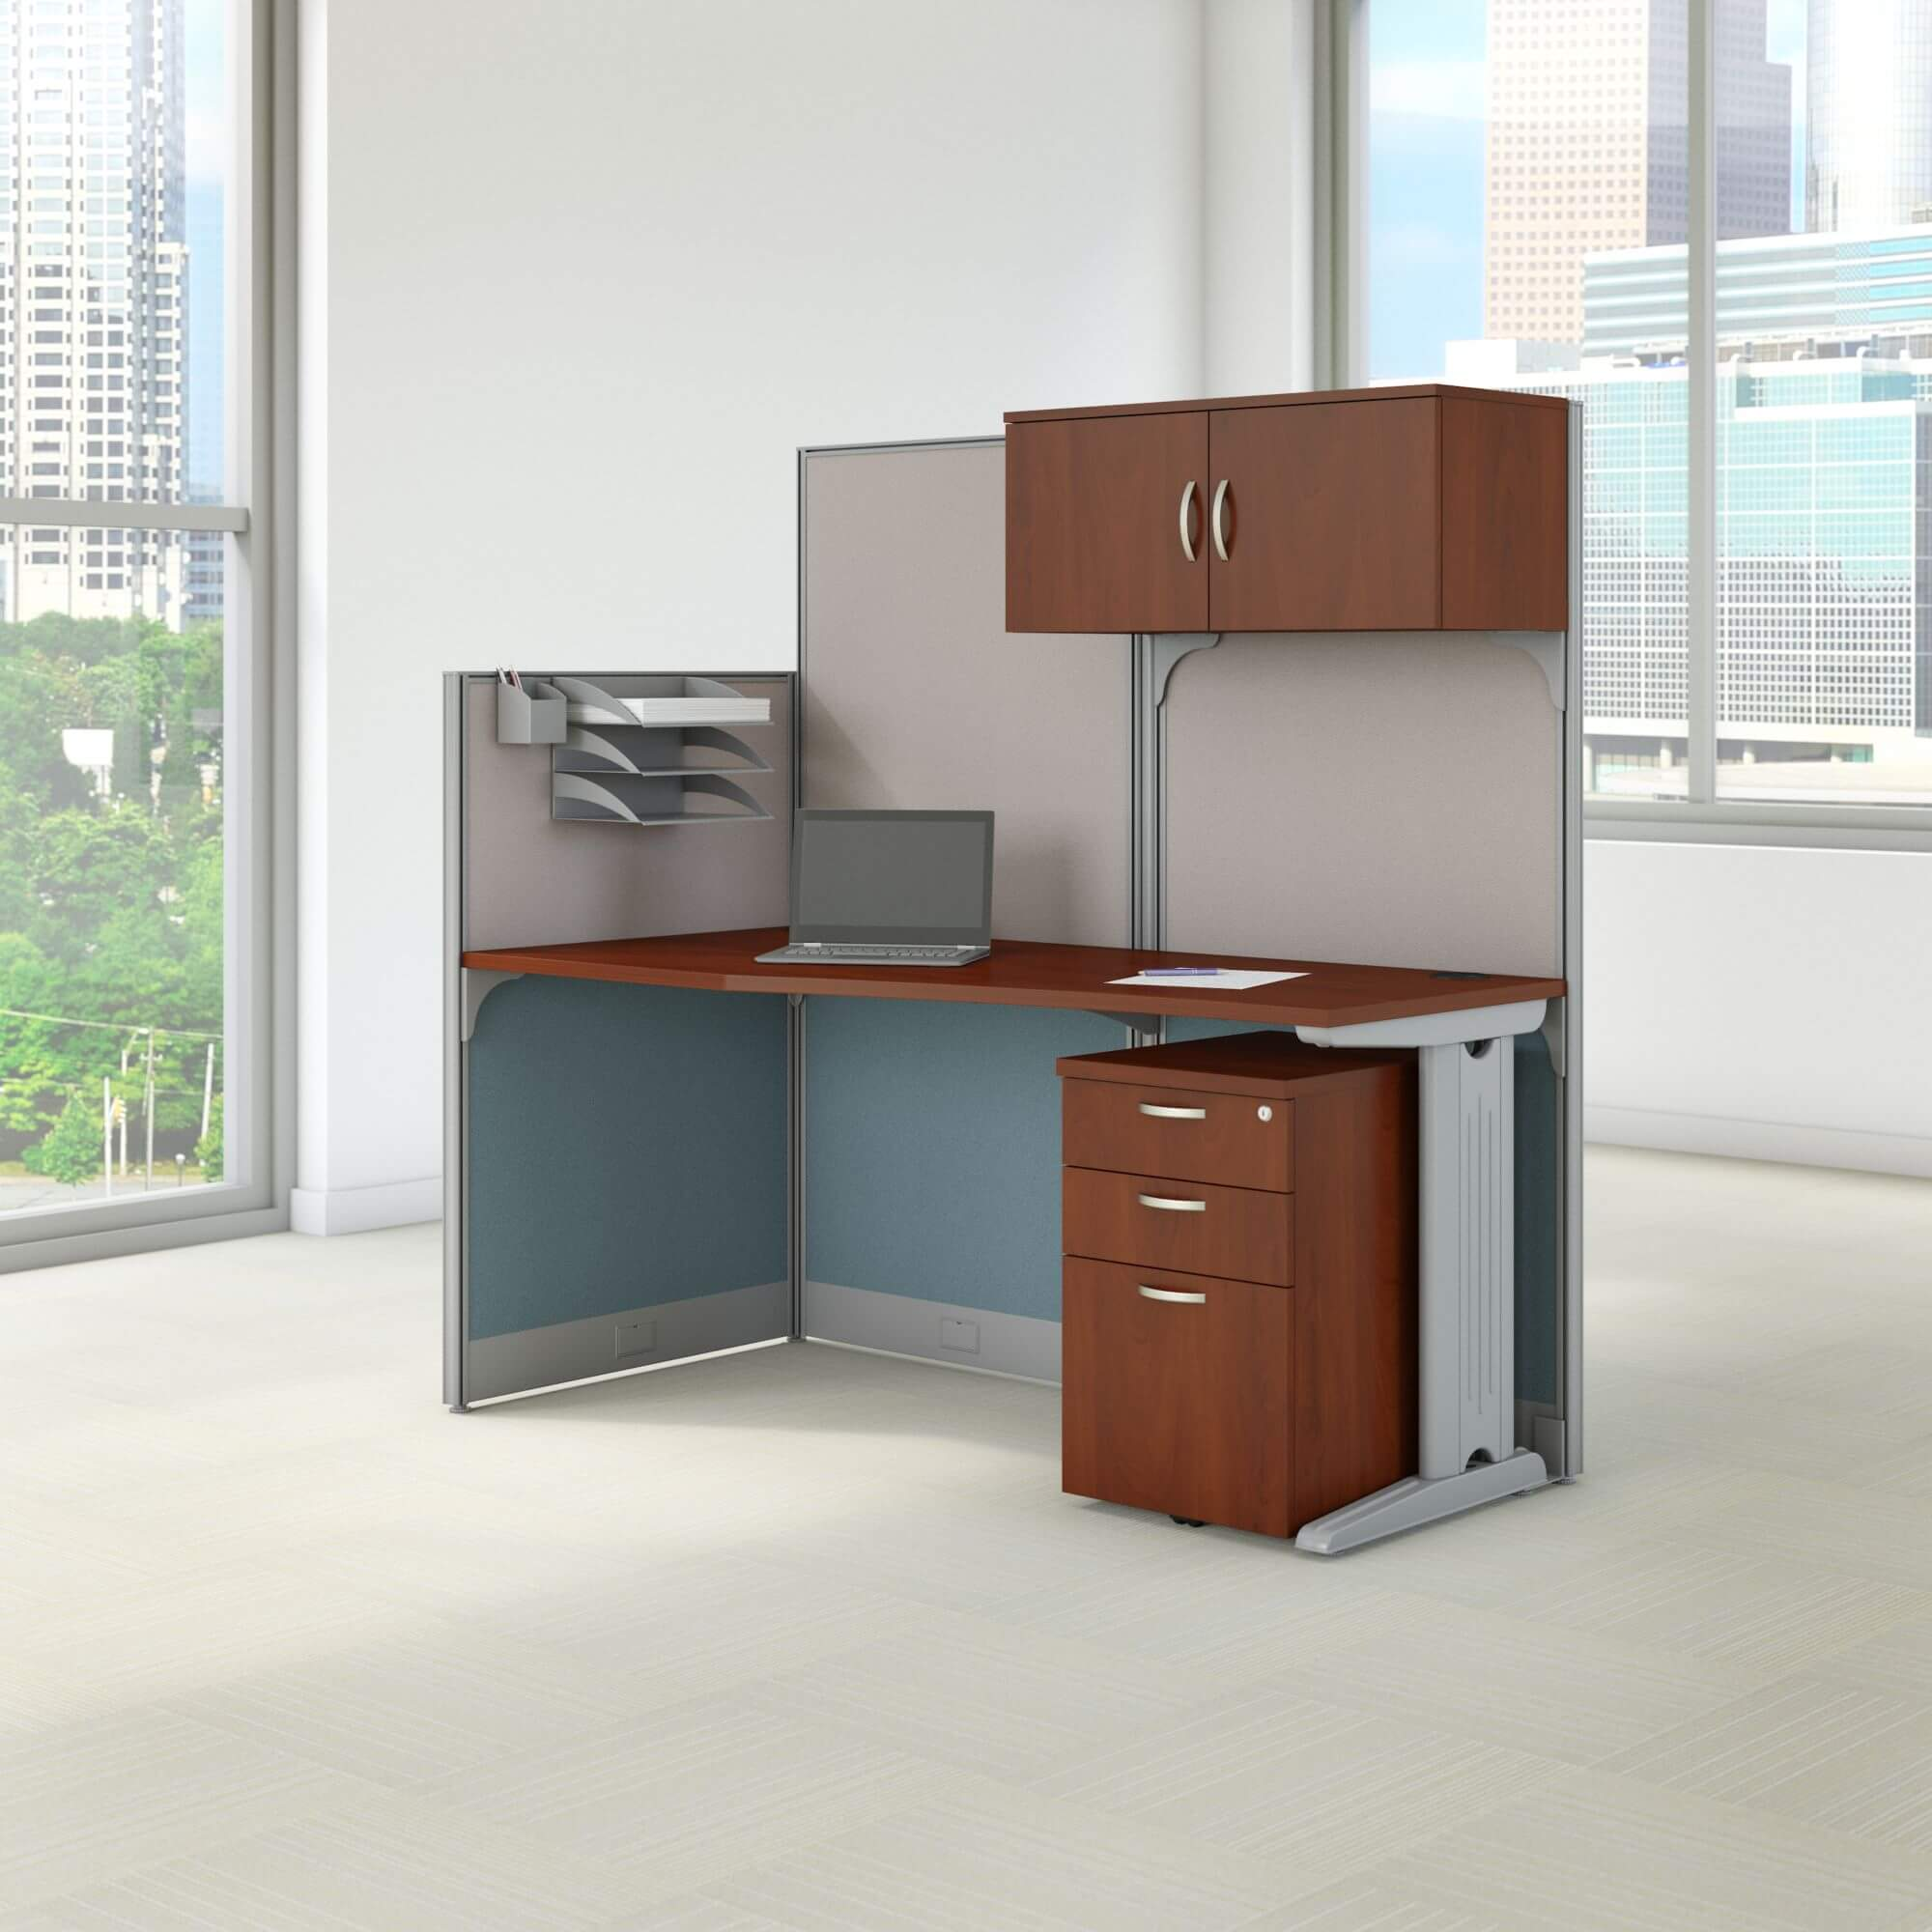 Office cubical storage environmental